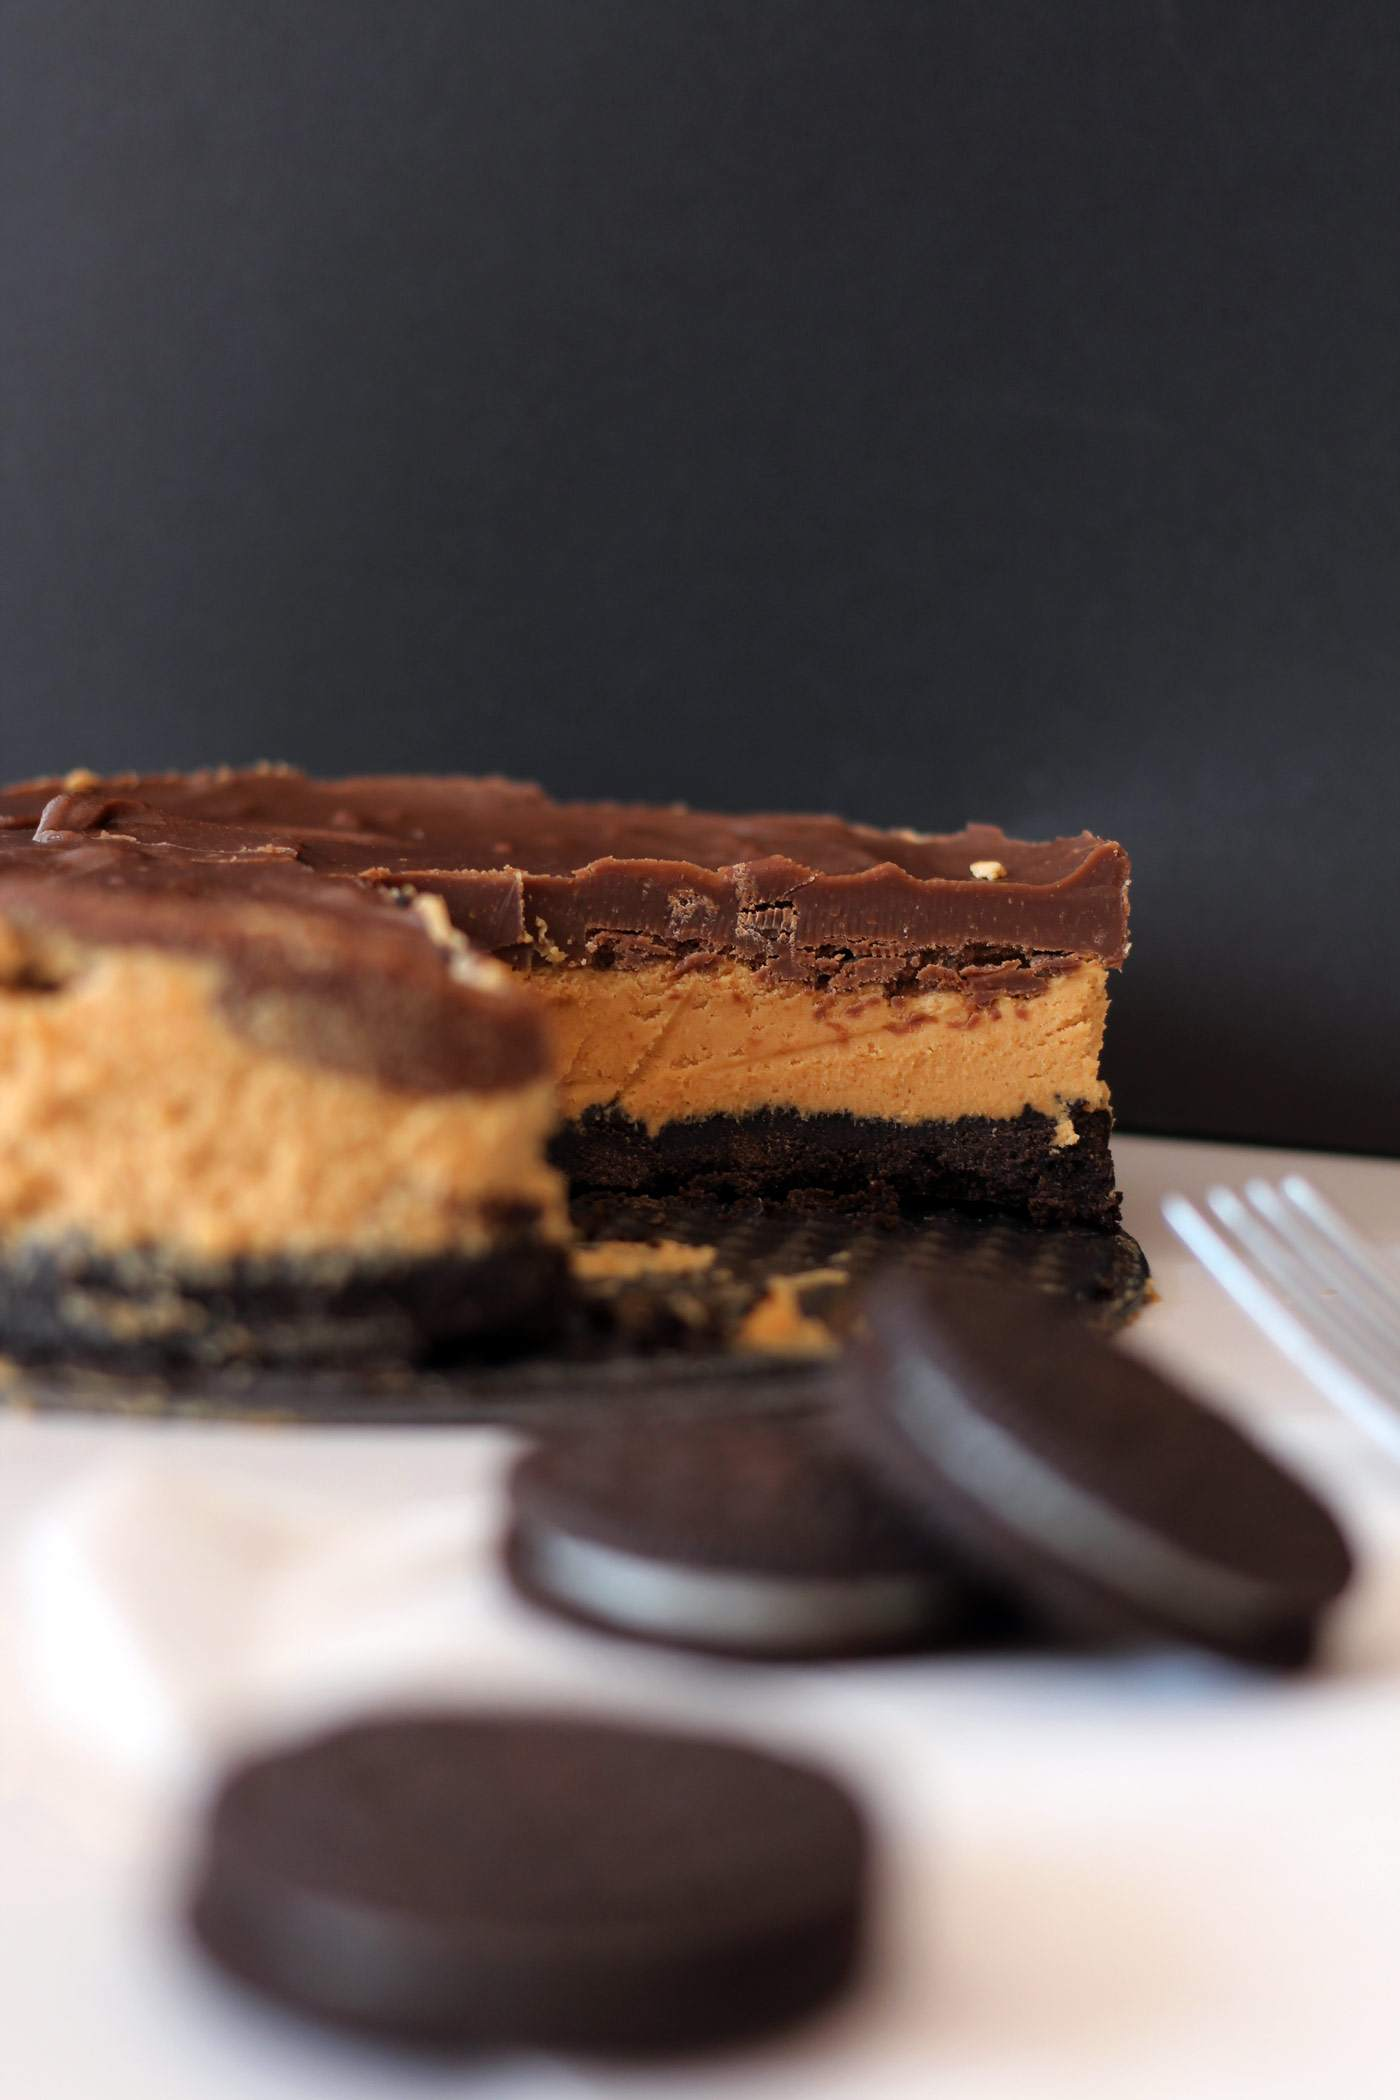 peanut-butter-oreo-chocolate-pie-cake-triple-layer-dessert